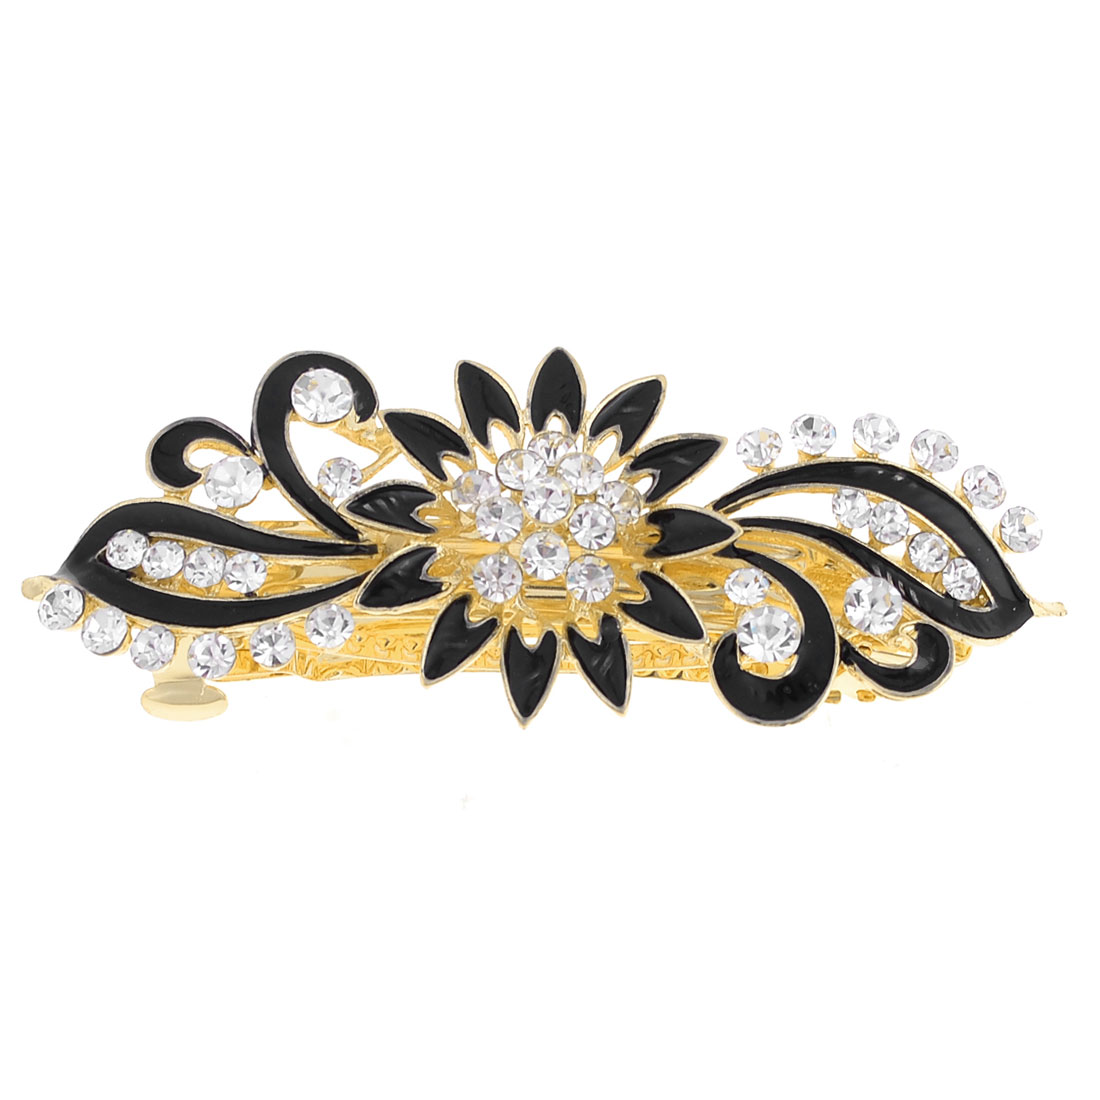 Lady Flower Shape Party Wedding Shiny Rhinestone Designed French Hair Clip Black